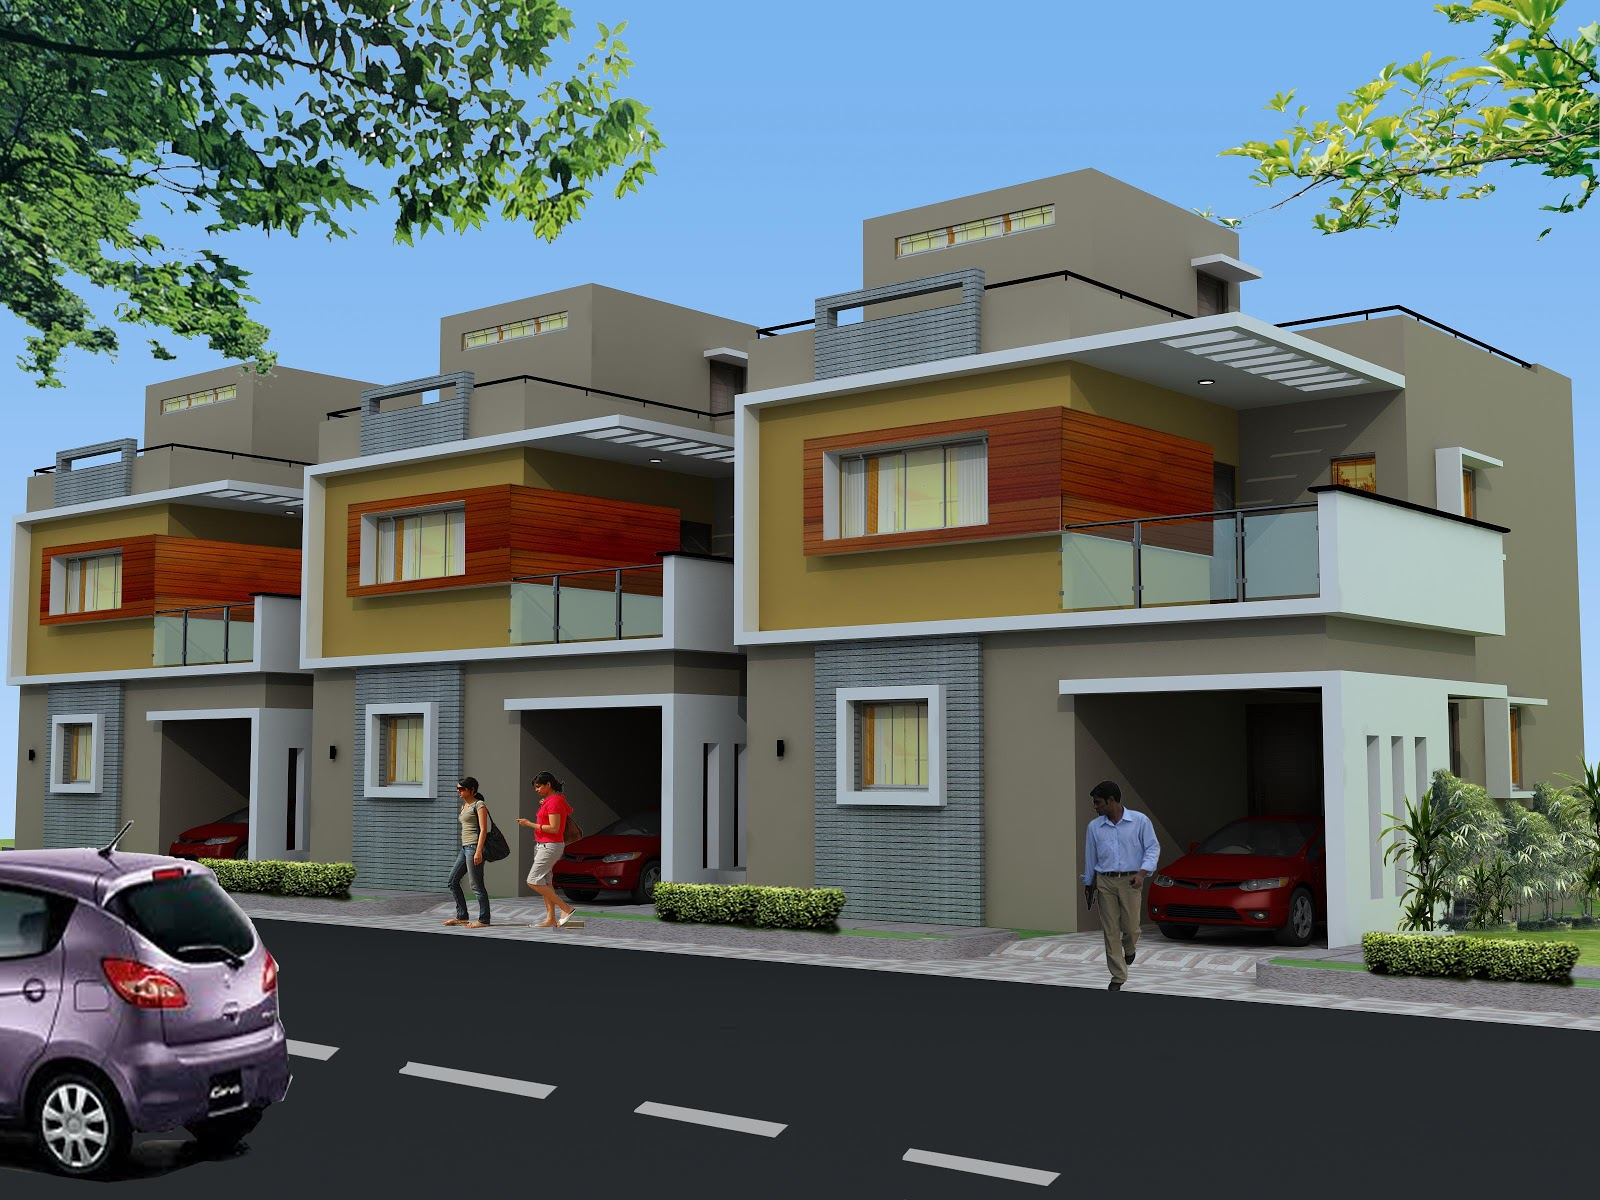 Luxury designer duplex villas for sale lake shore villas for Luxury duplex house plans